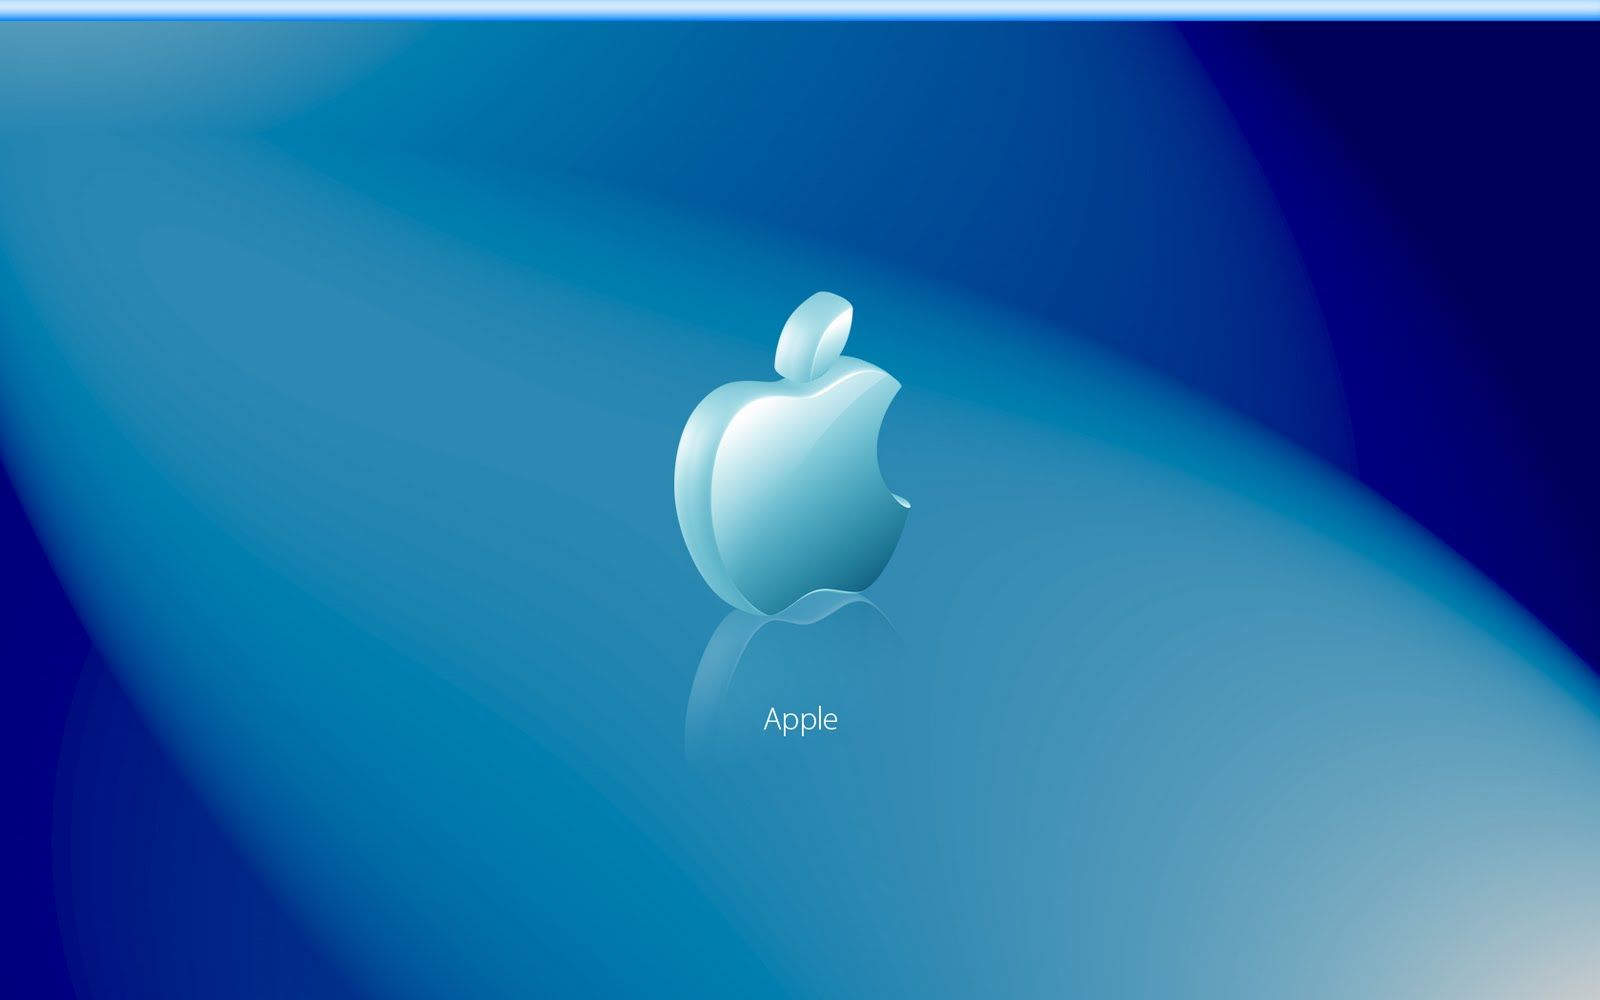 Pin On Ipad Pro Others Wallpaper: Best Apple Logo - Bing Images